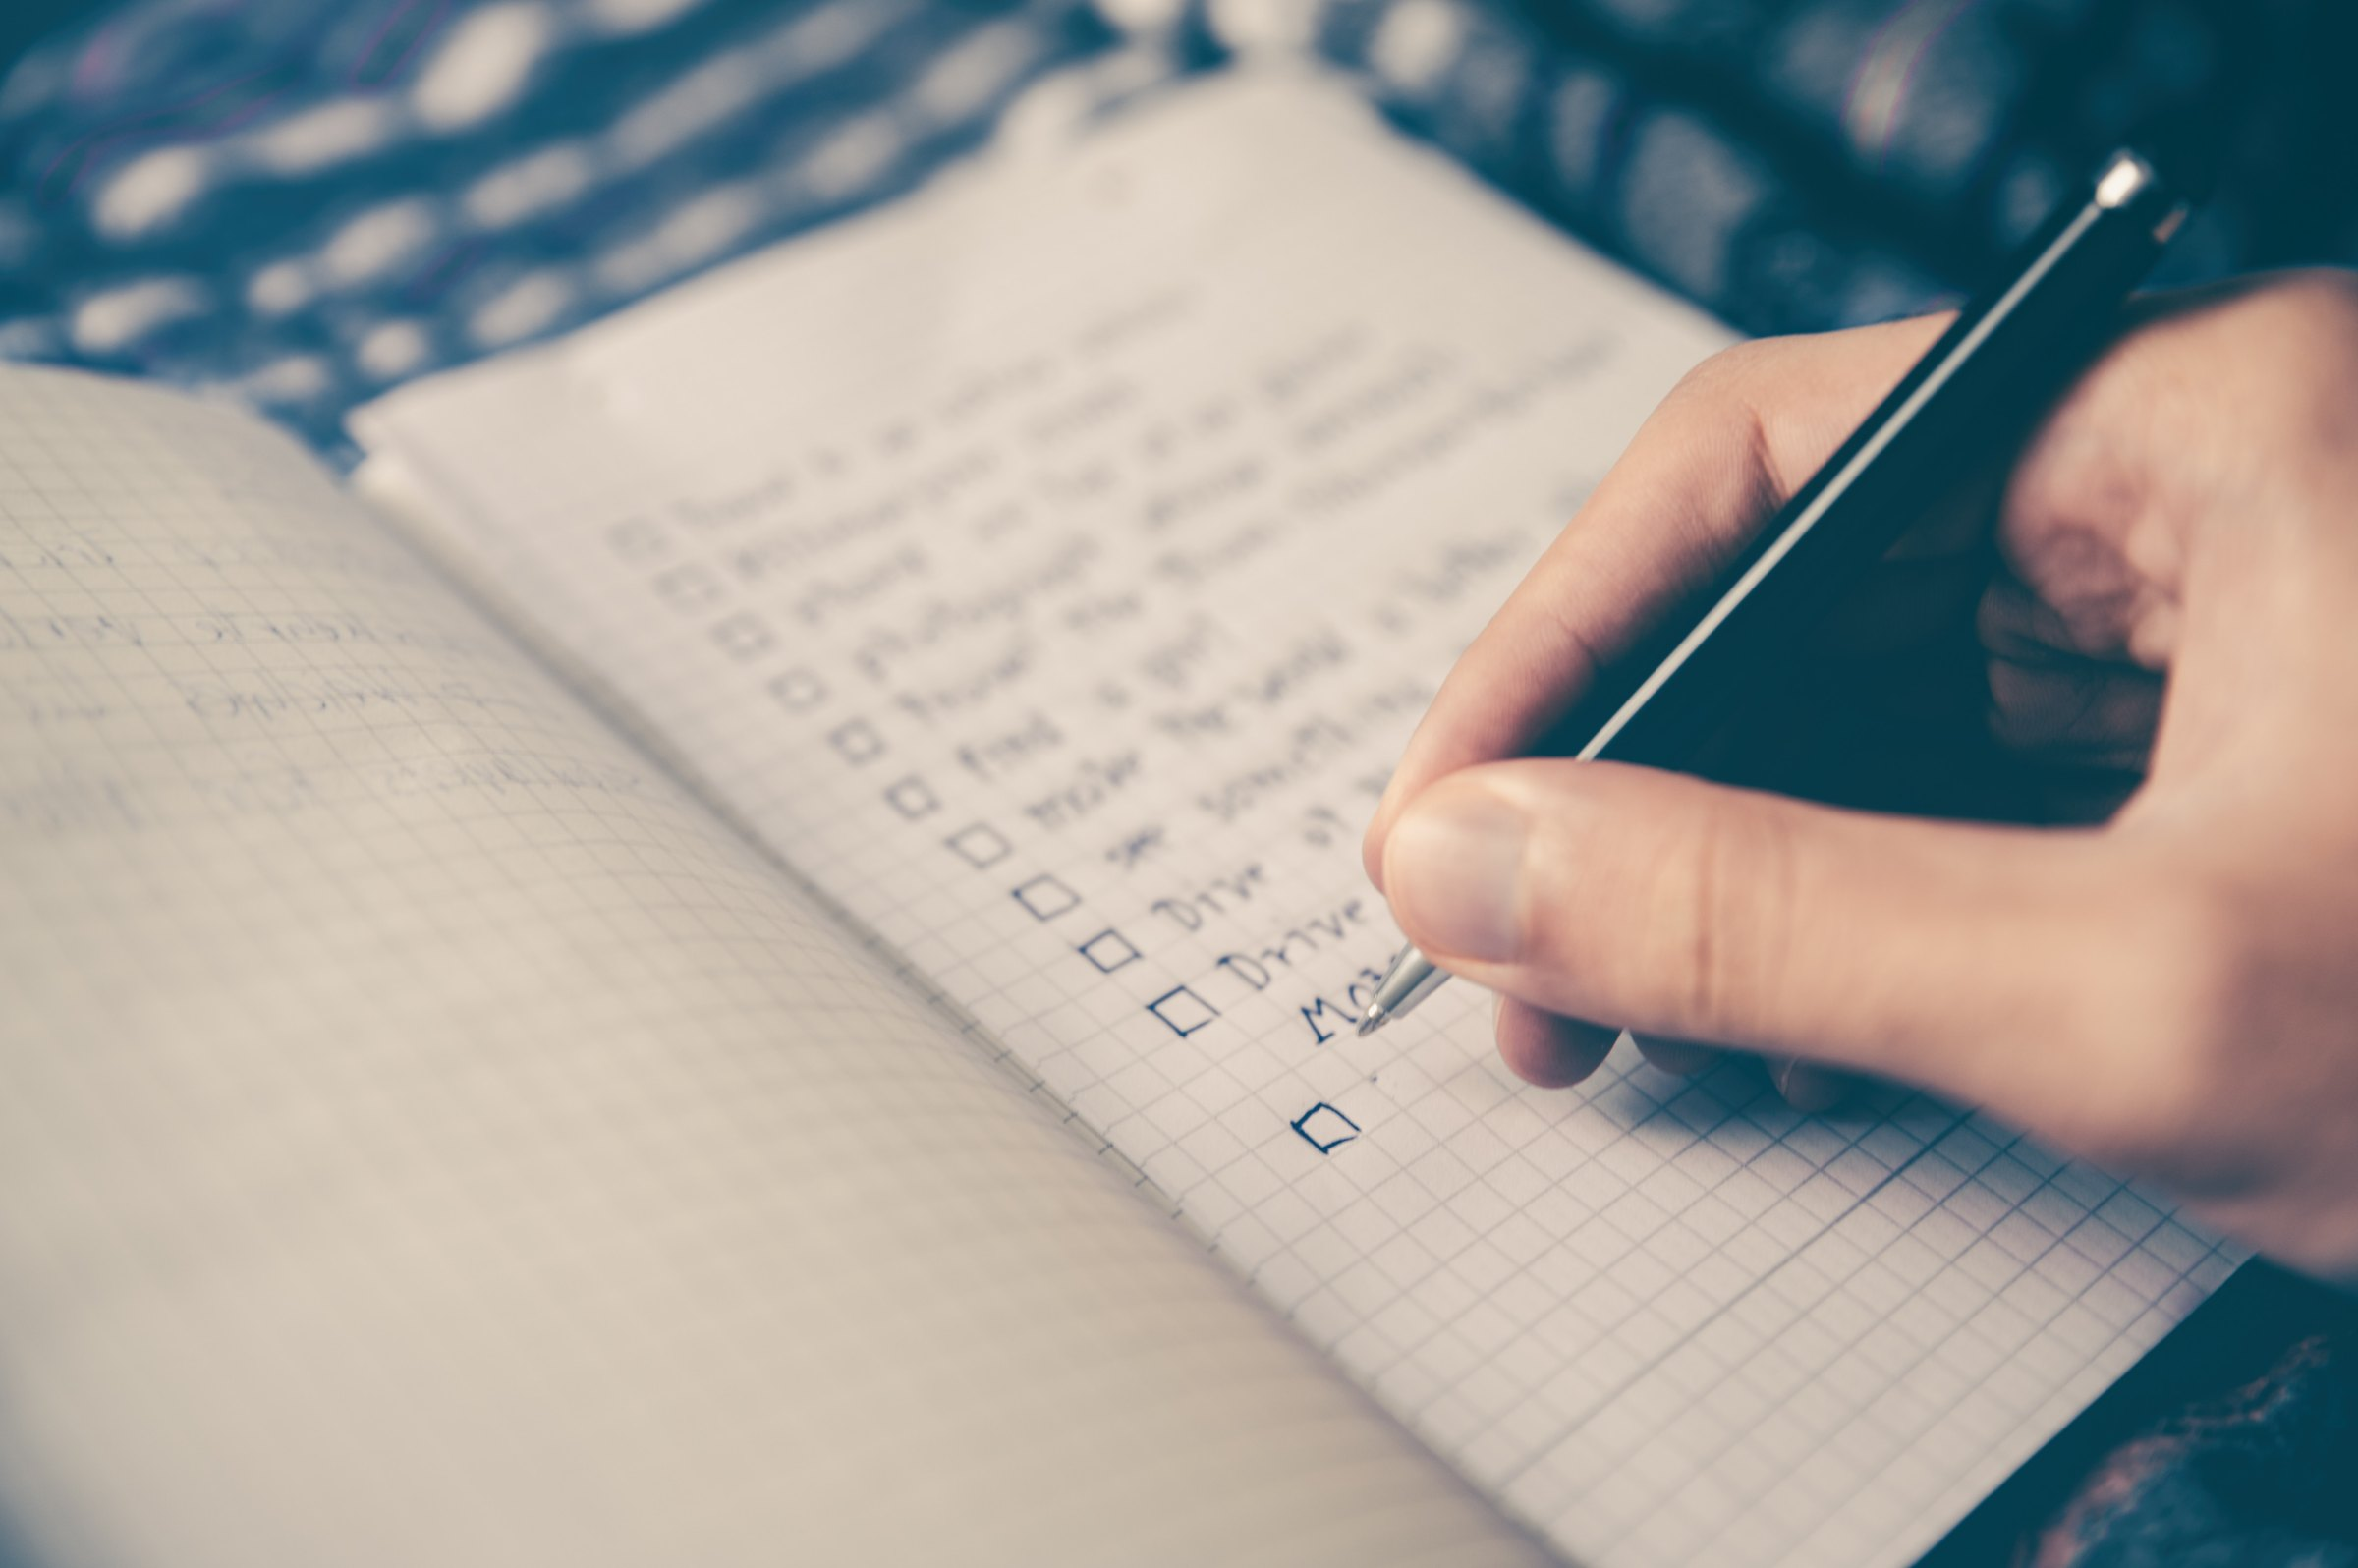 checklist for work management